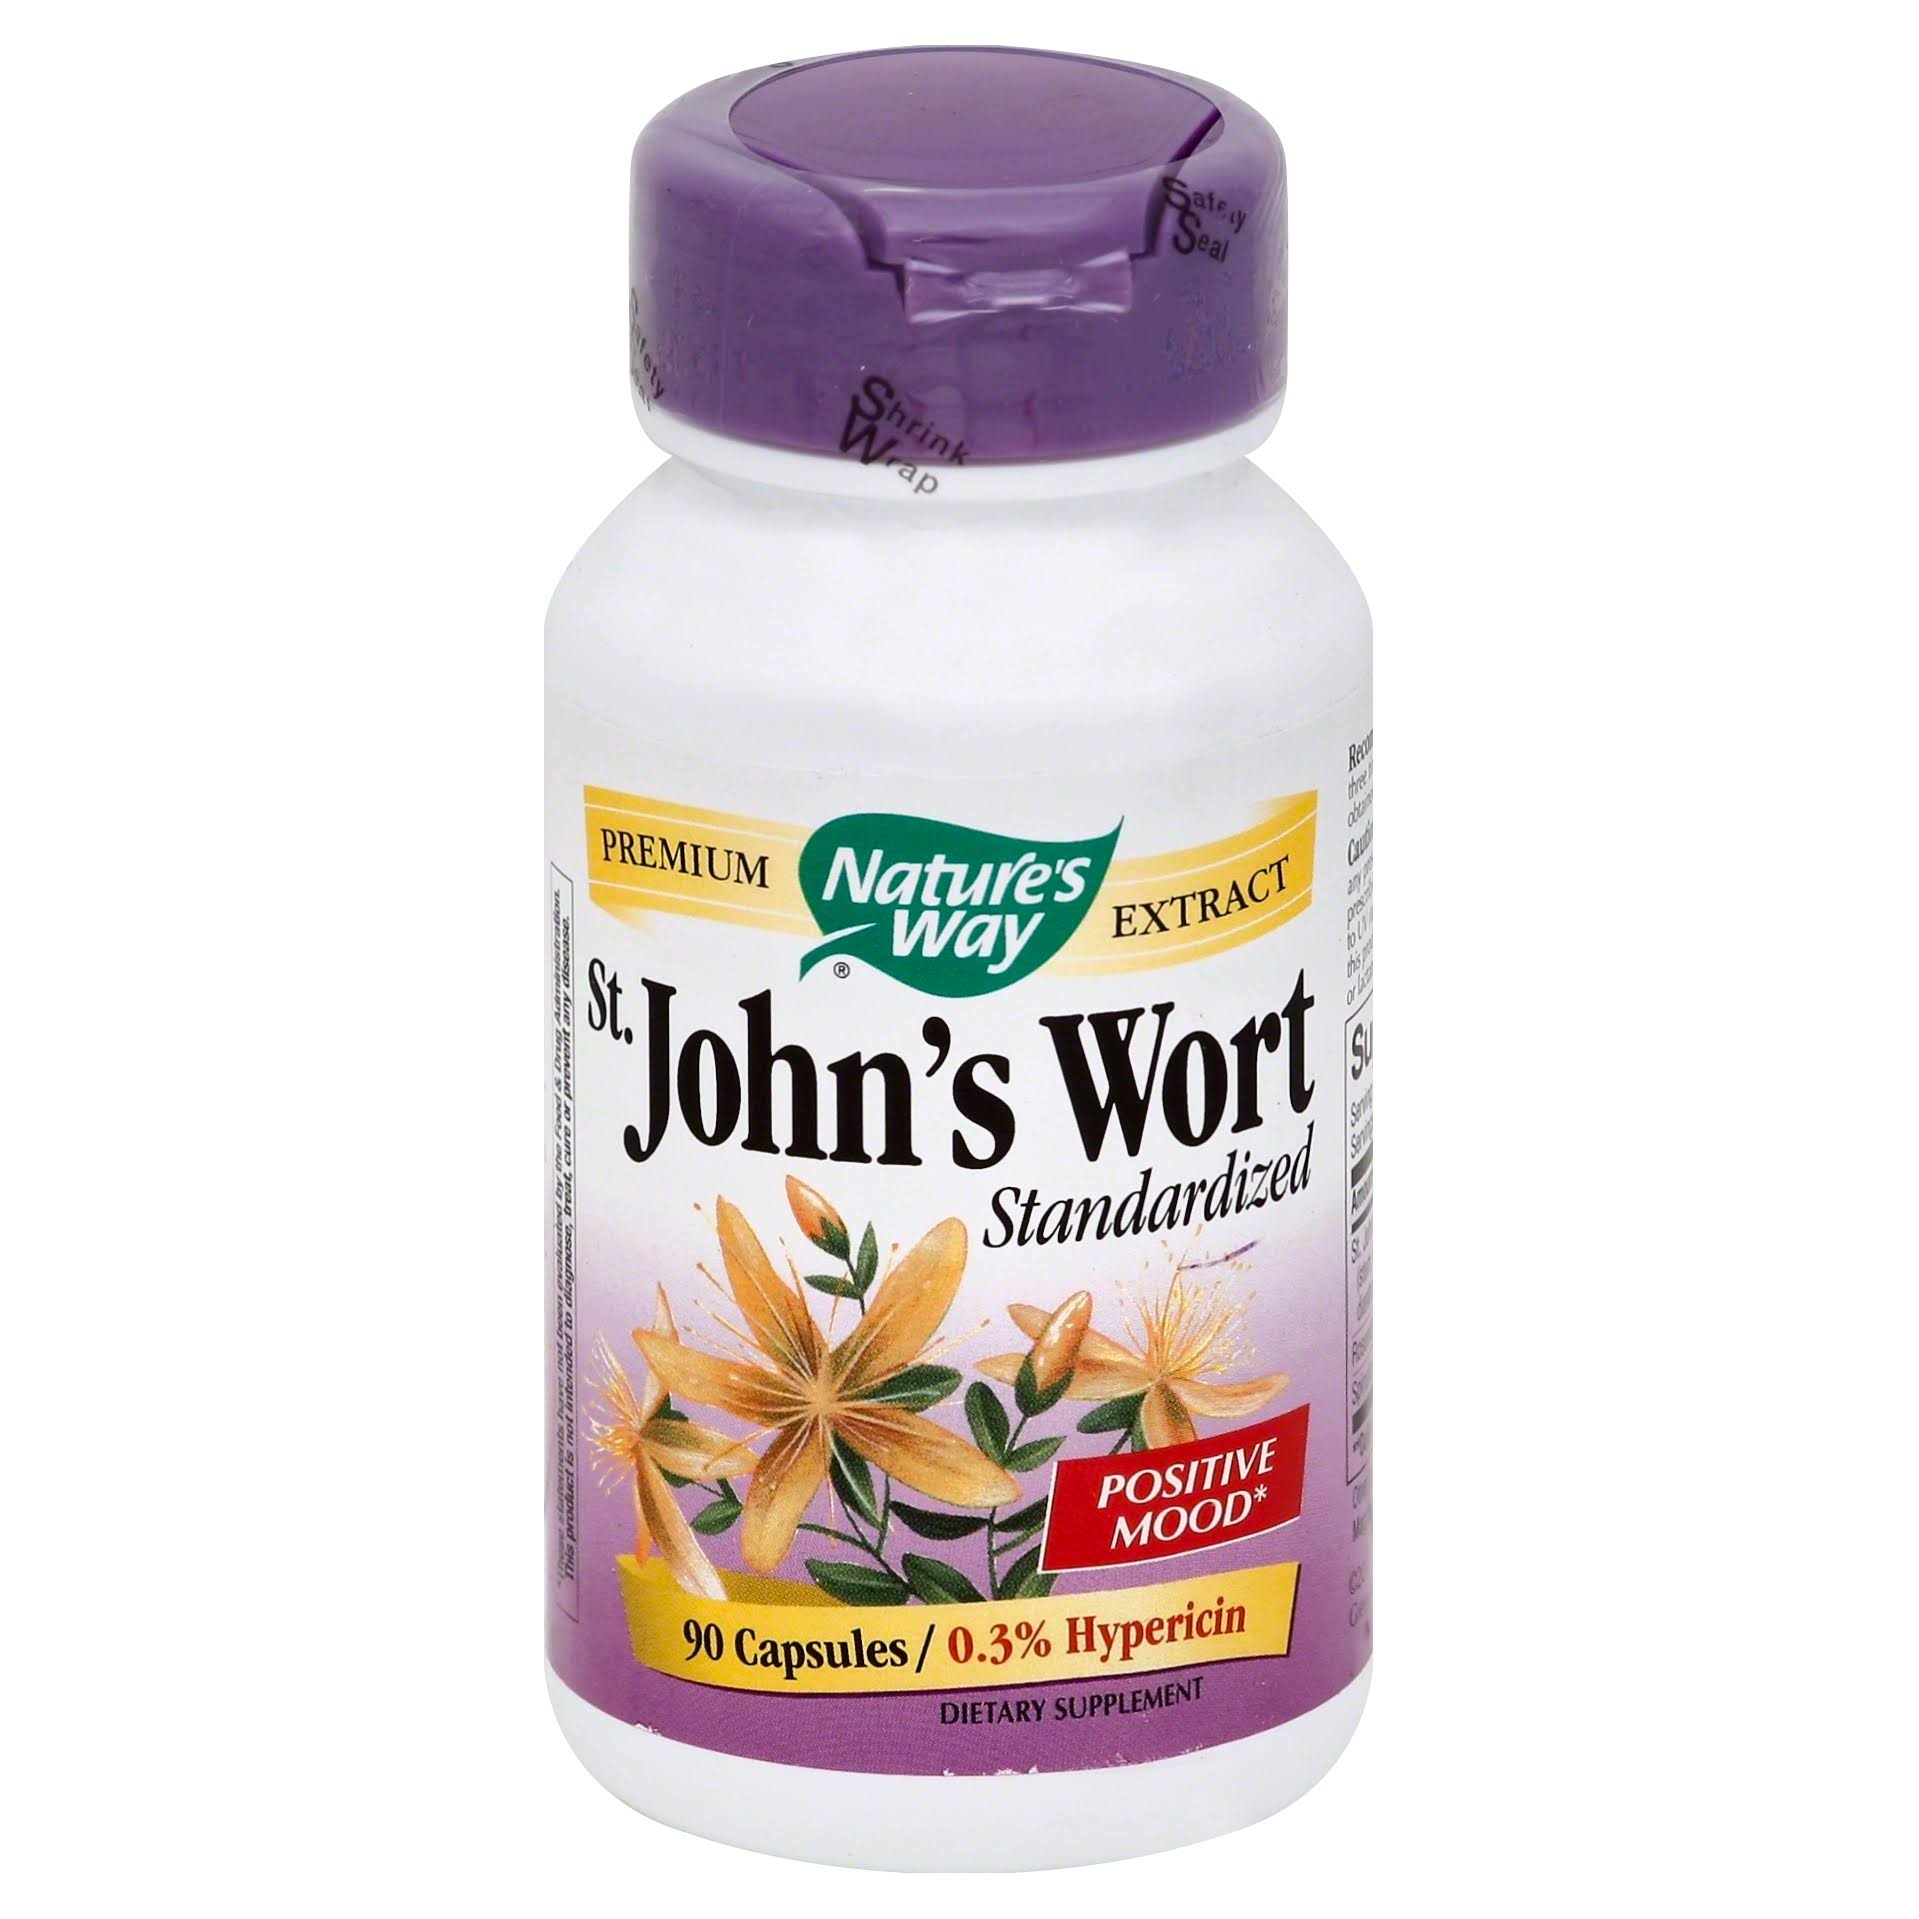 Nature's Way St John's Wort Standardized Dietary Supplement - 90 Capsules